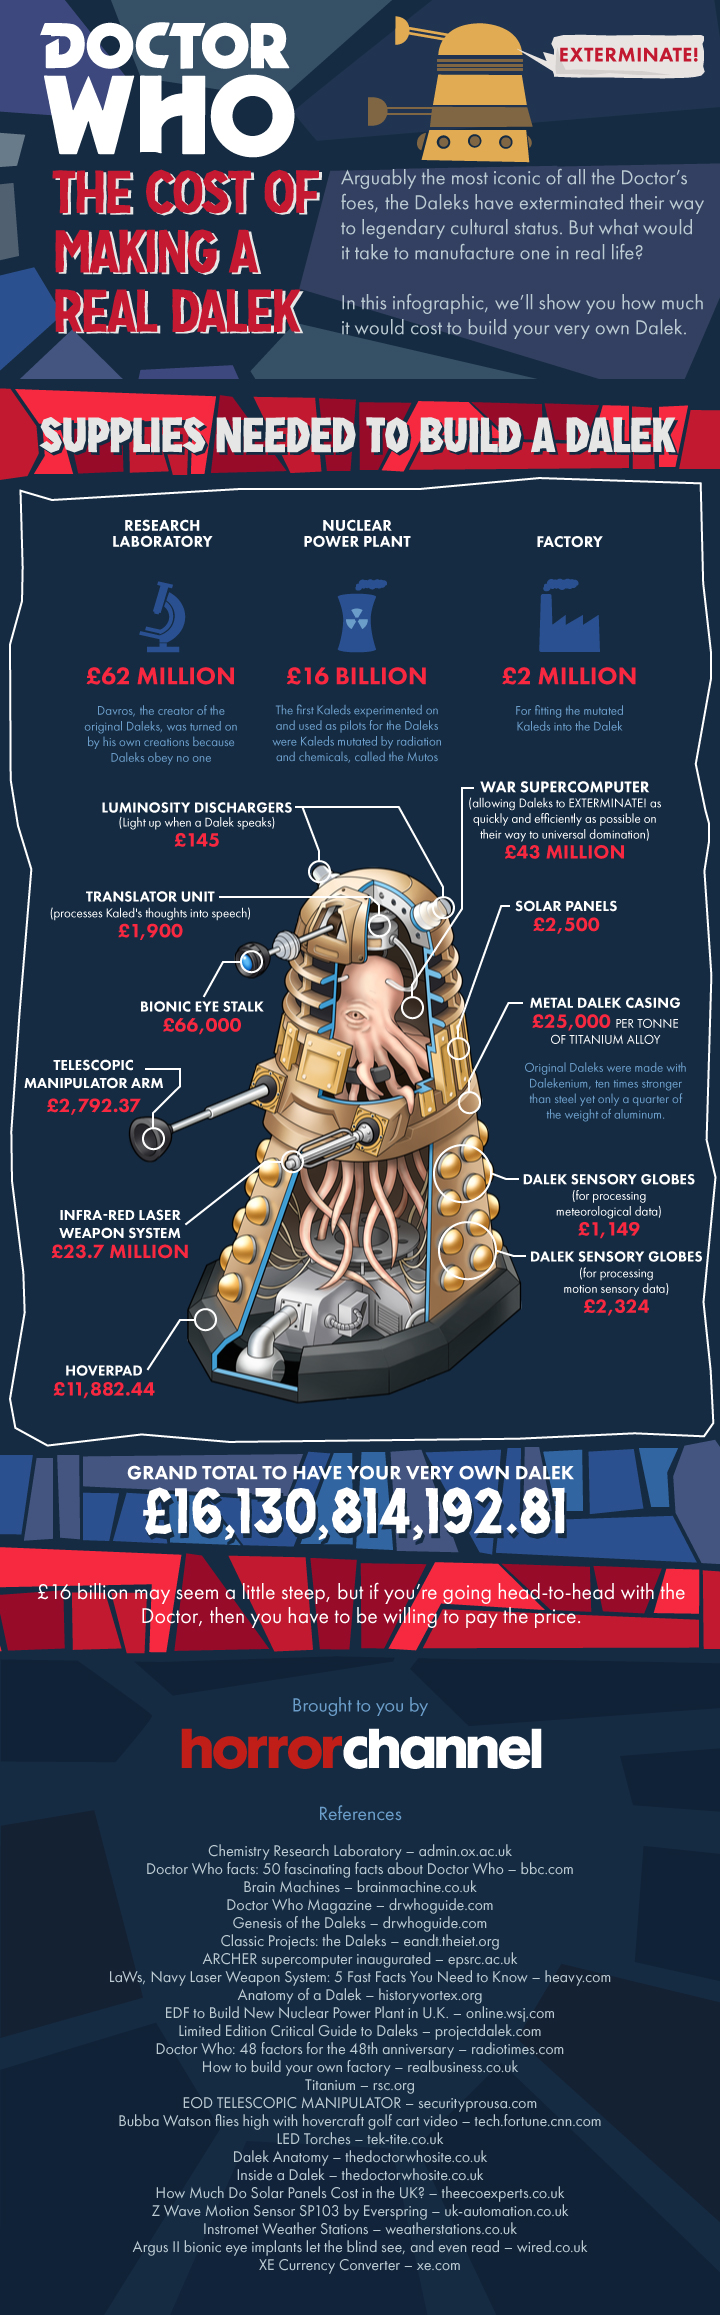 The cost of making a real dalek